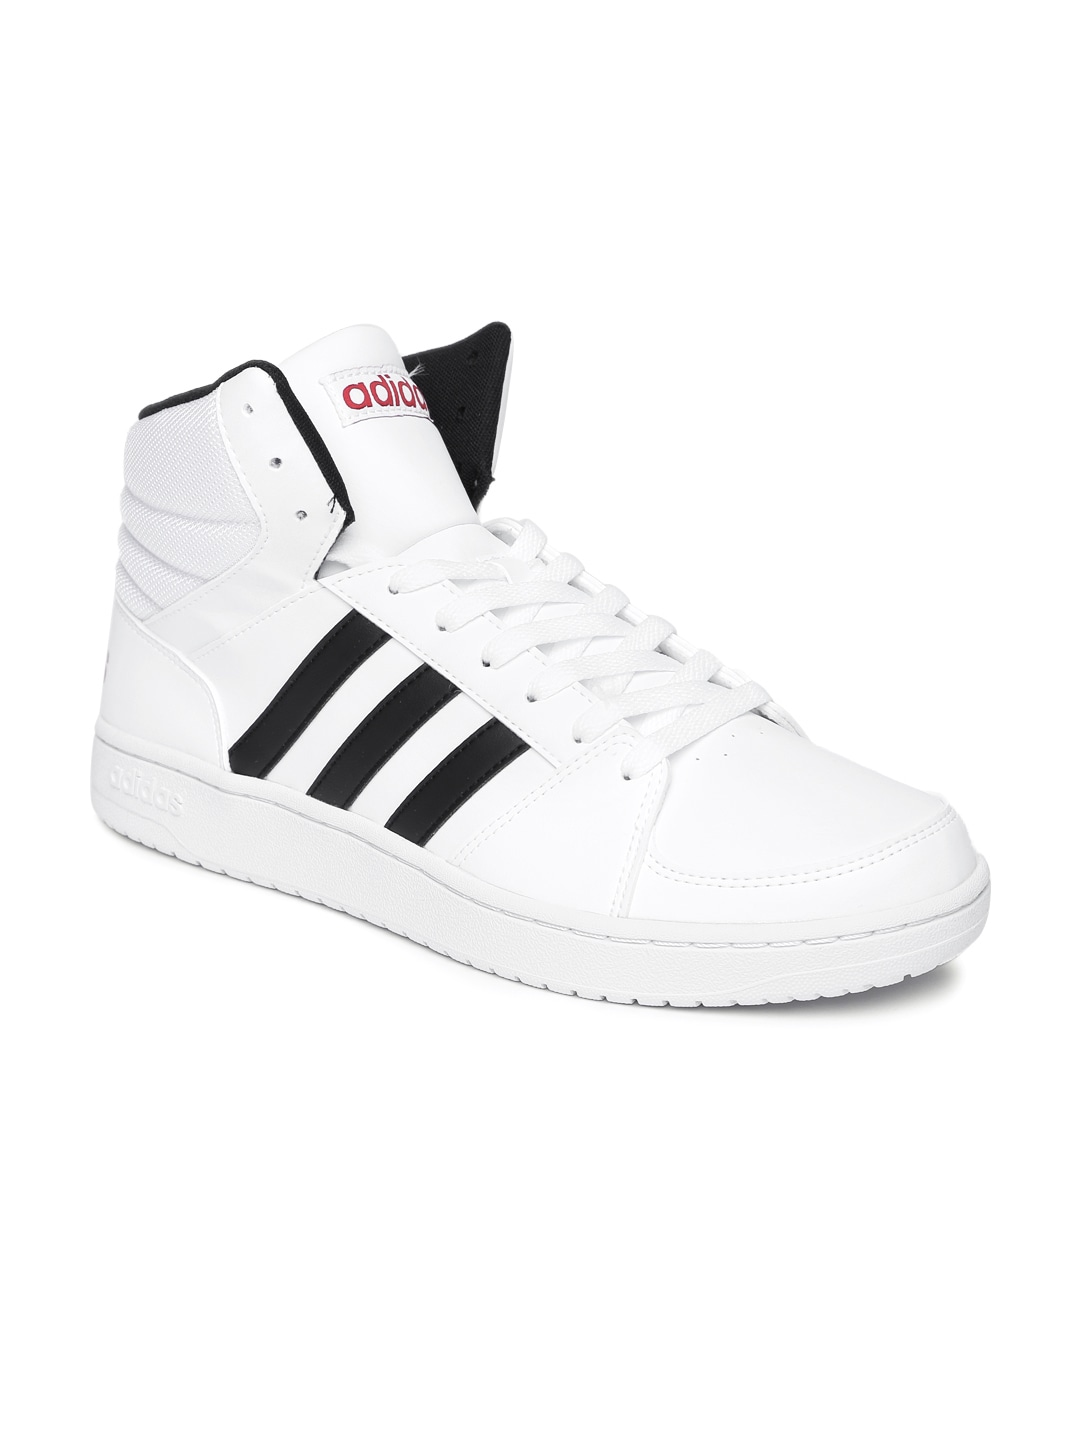 ... discount adidas neo men vs hoops mid top sneakers price in india 121b4  62195 a936cbc4725e